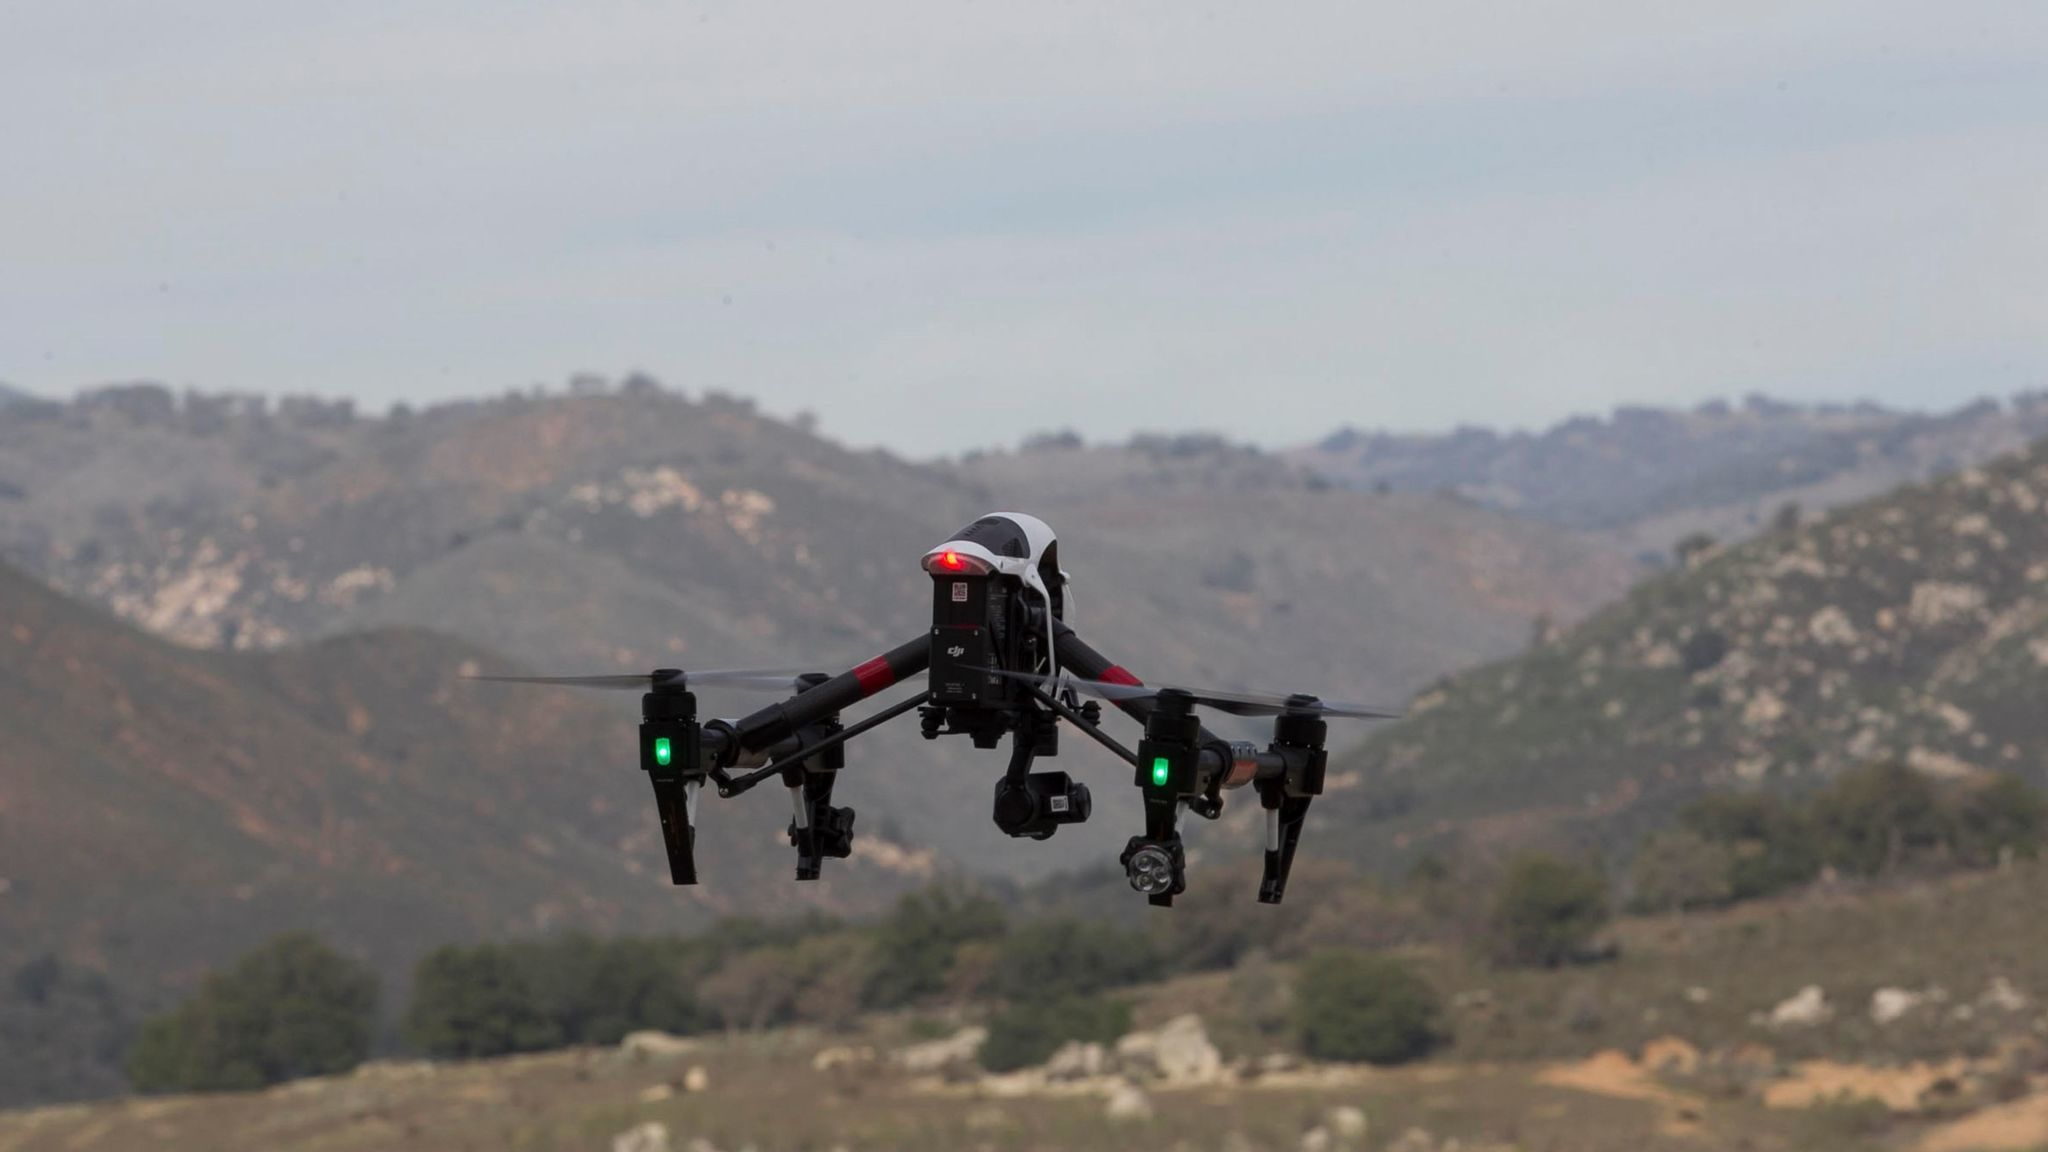 Will San Diego S Drone Rules Be Strong Enough Chula